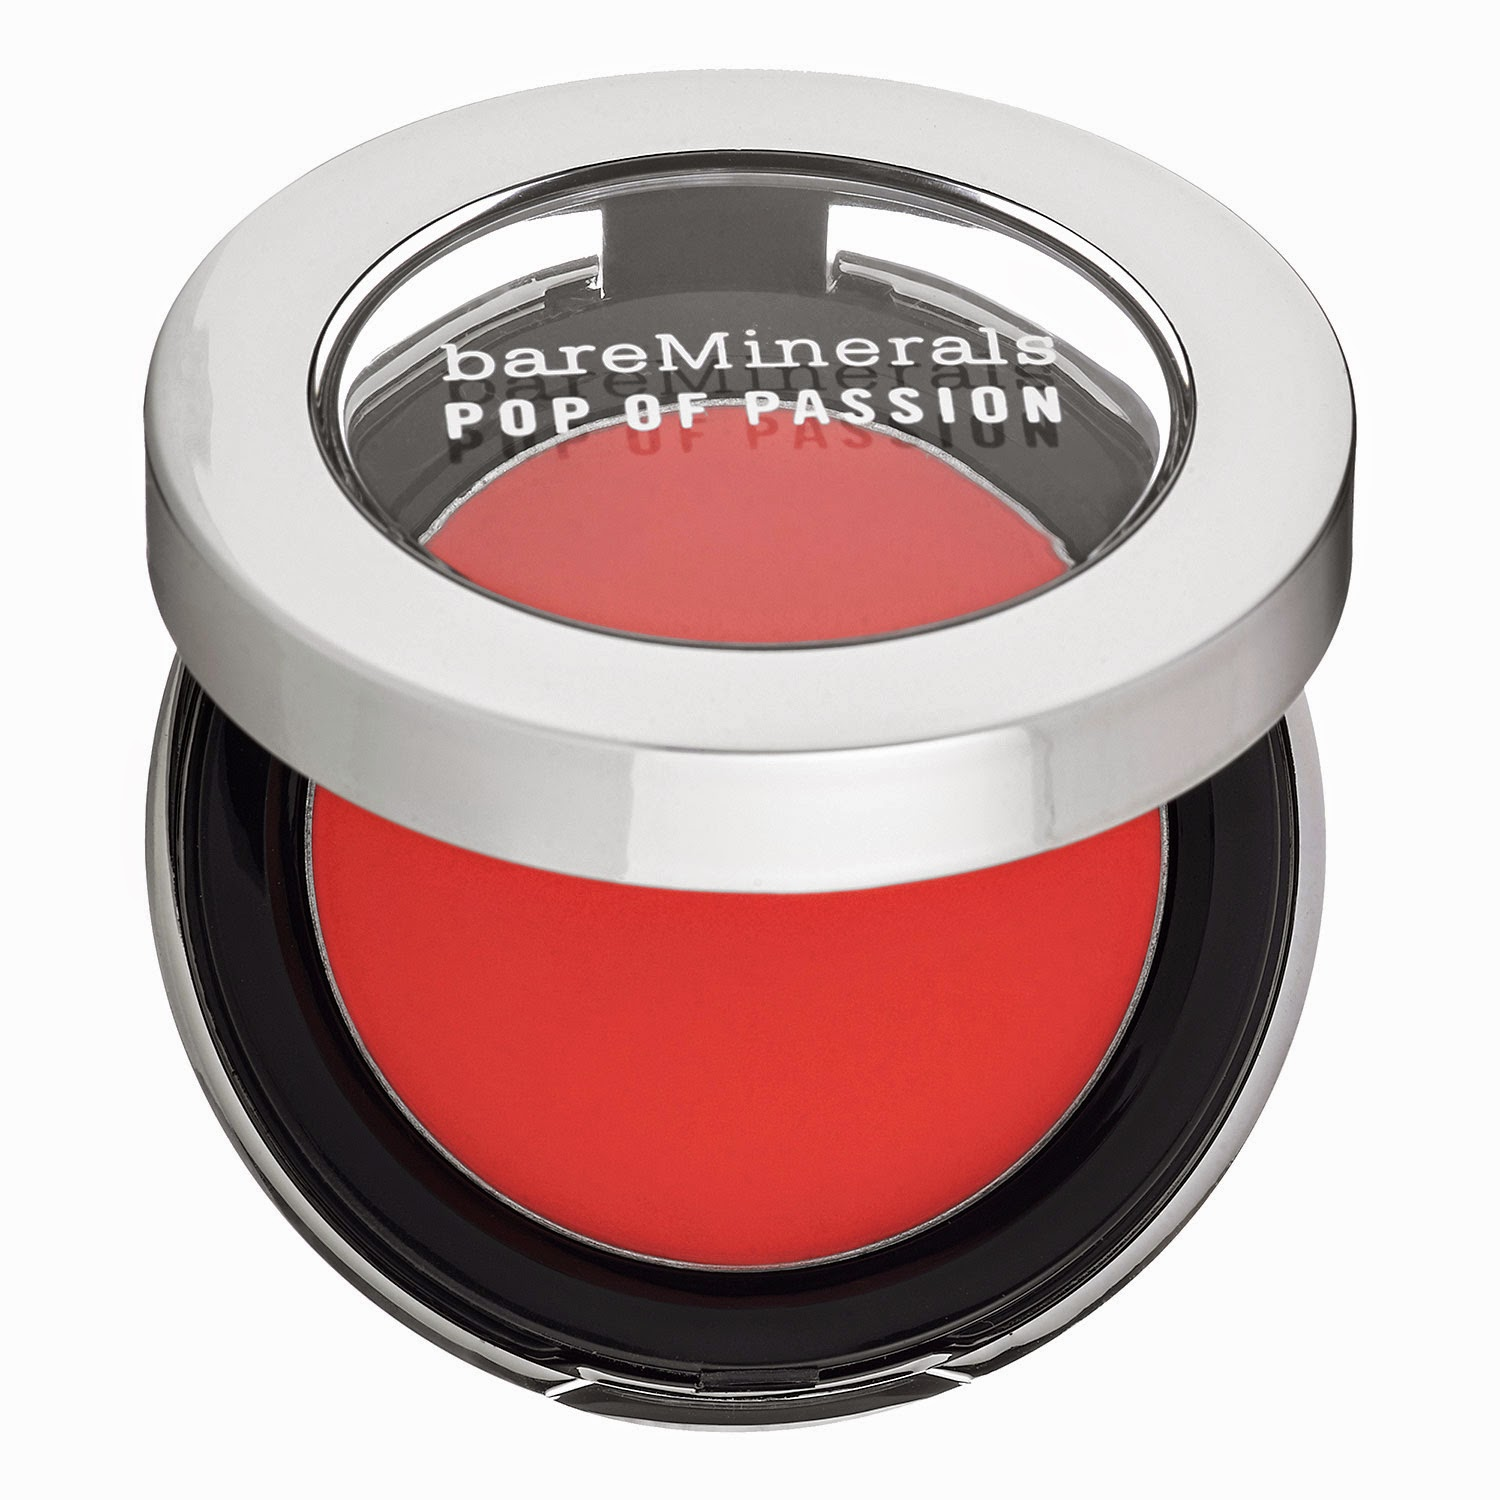 BareMinerals: Pop of Passion Balm Blushes - Papaya Passion